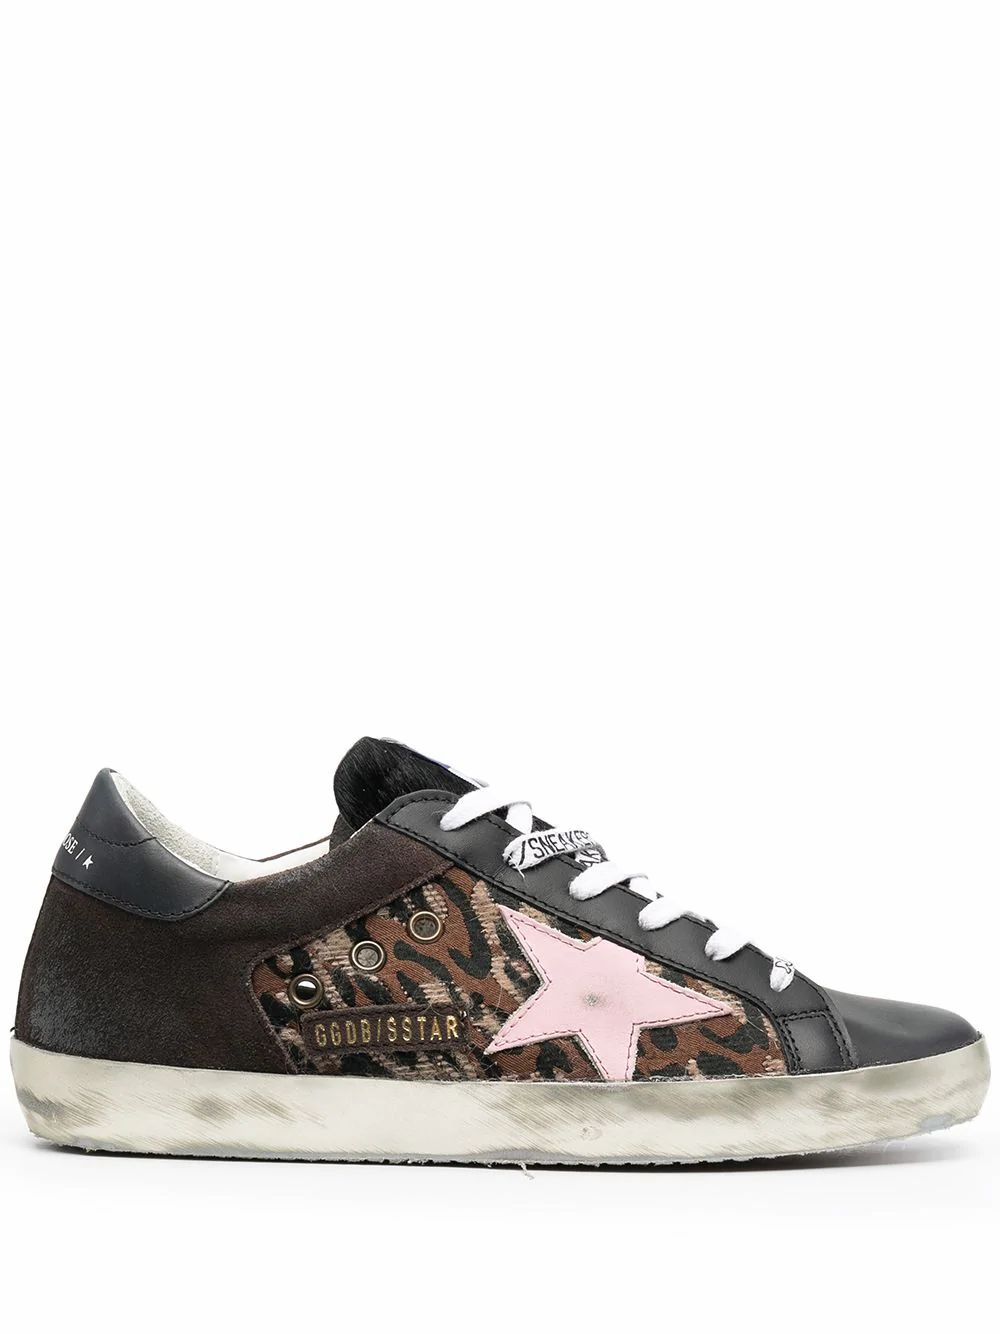 Golden Goose Leathers GOLDEN GOOSE WOMEN'S BLACK LEATHER SNEAKERS